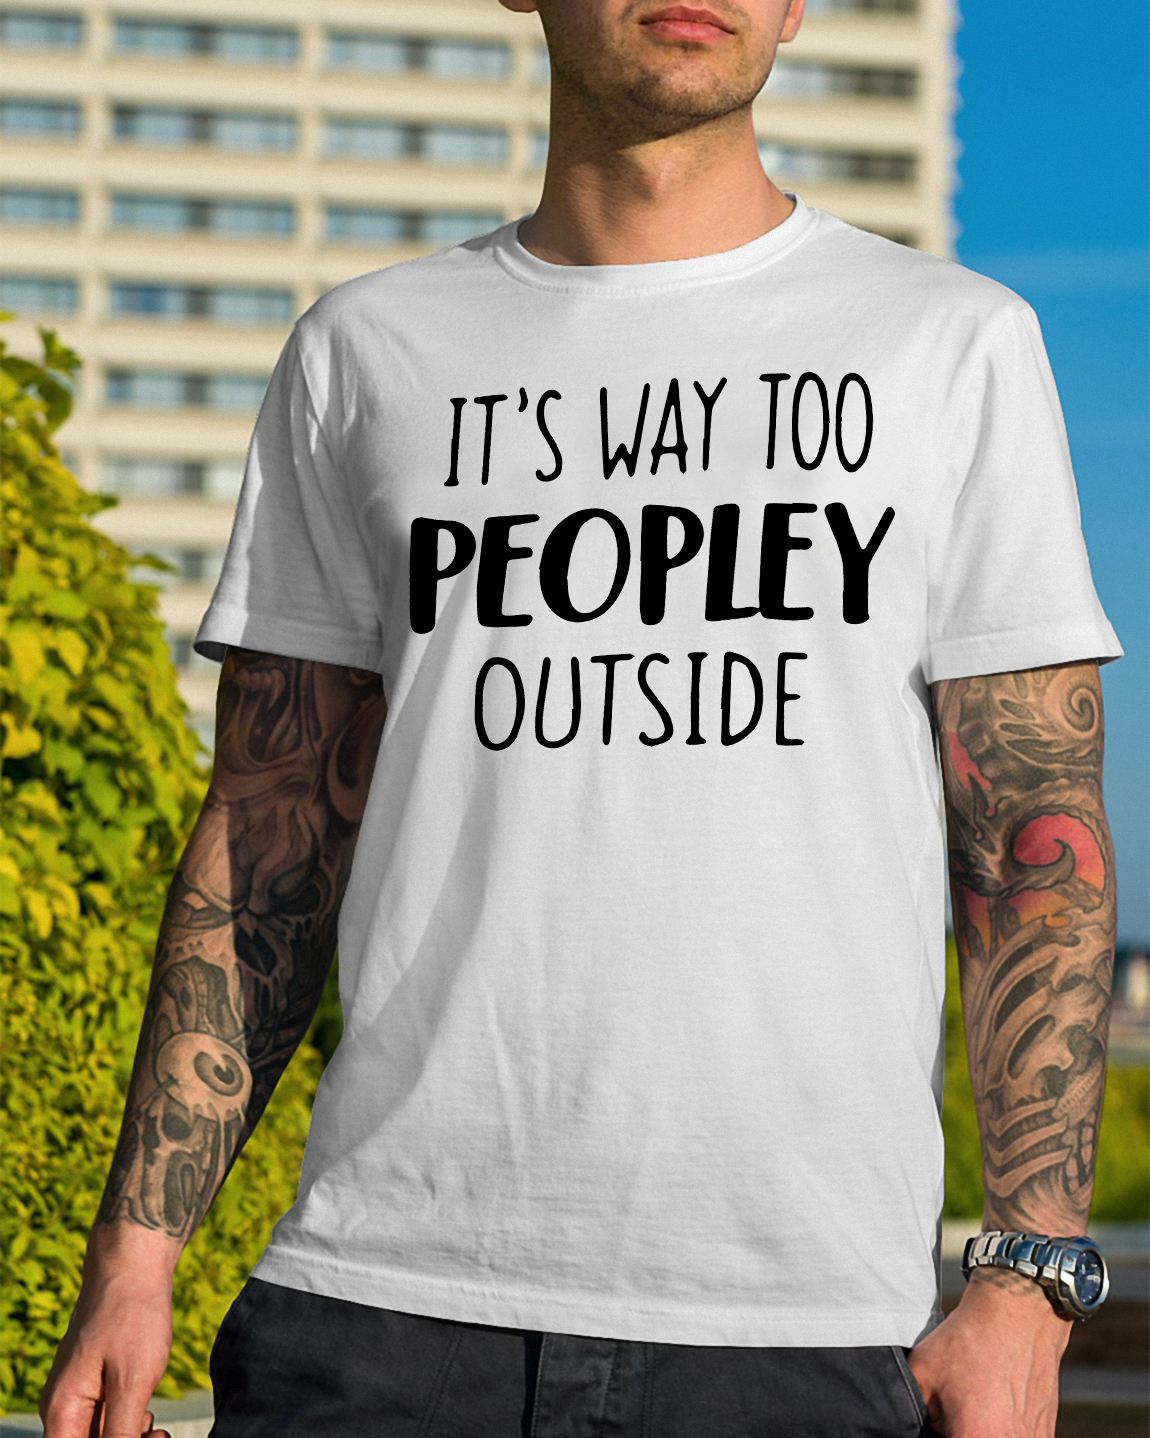 Way Peopley Outside Guys Shirt